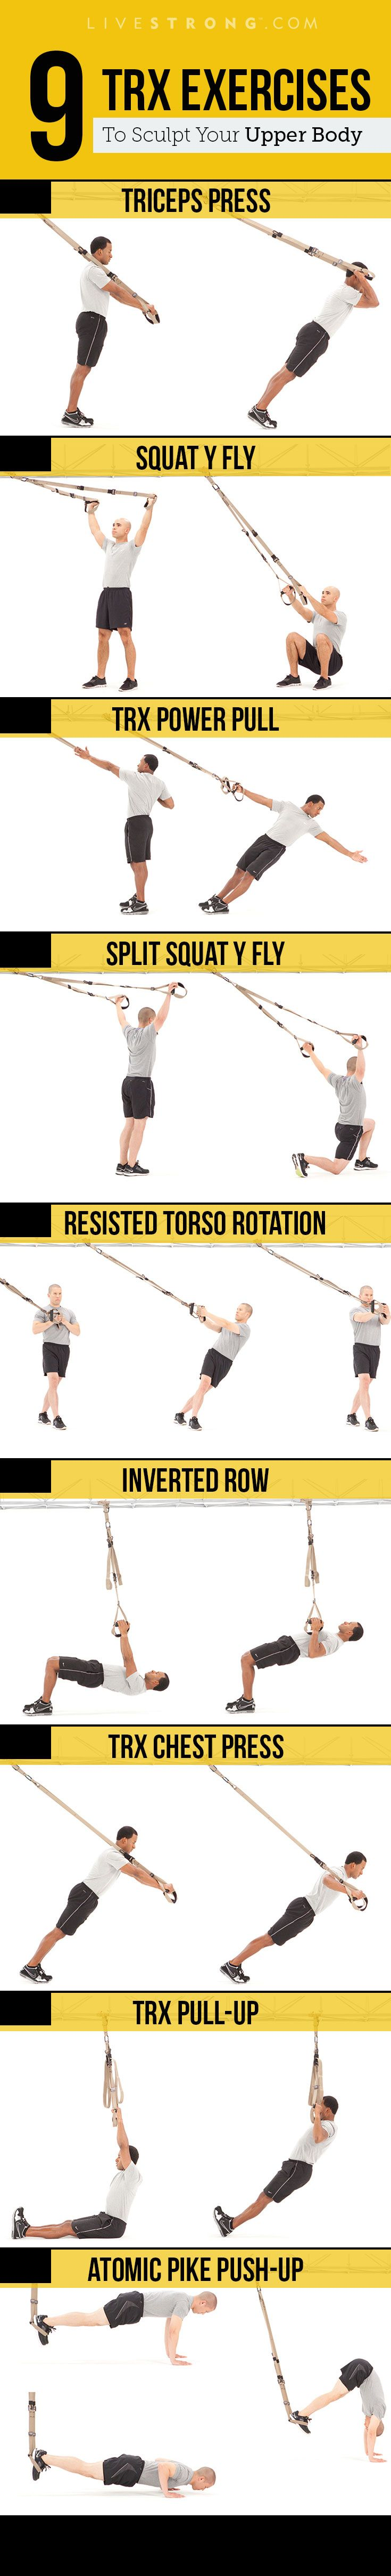 TRX Moves to Sculpt an Insanely Strong Upper Body | Health and ...